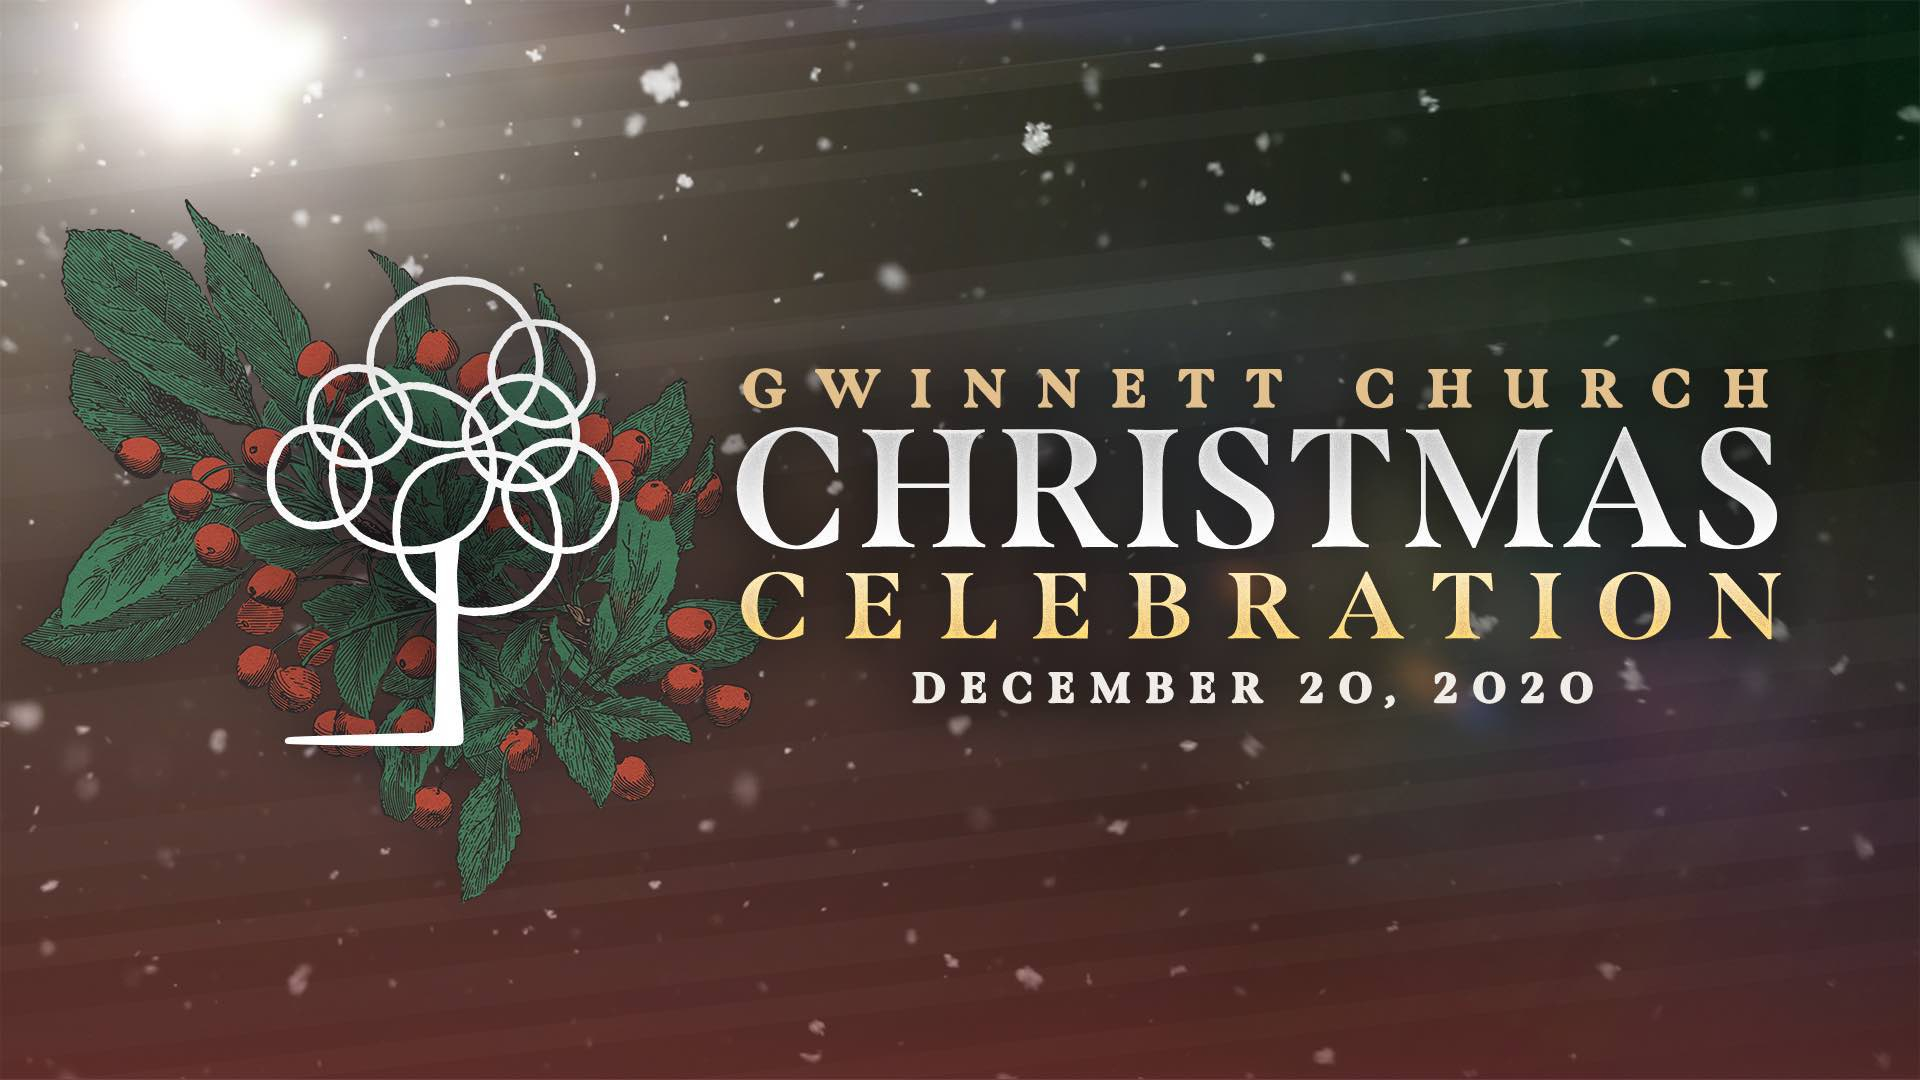 Gwinnett Church Christmas Celebration